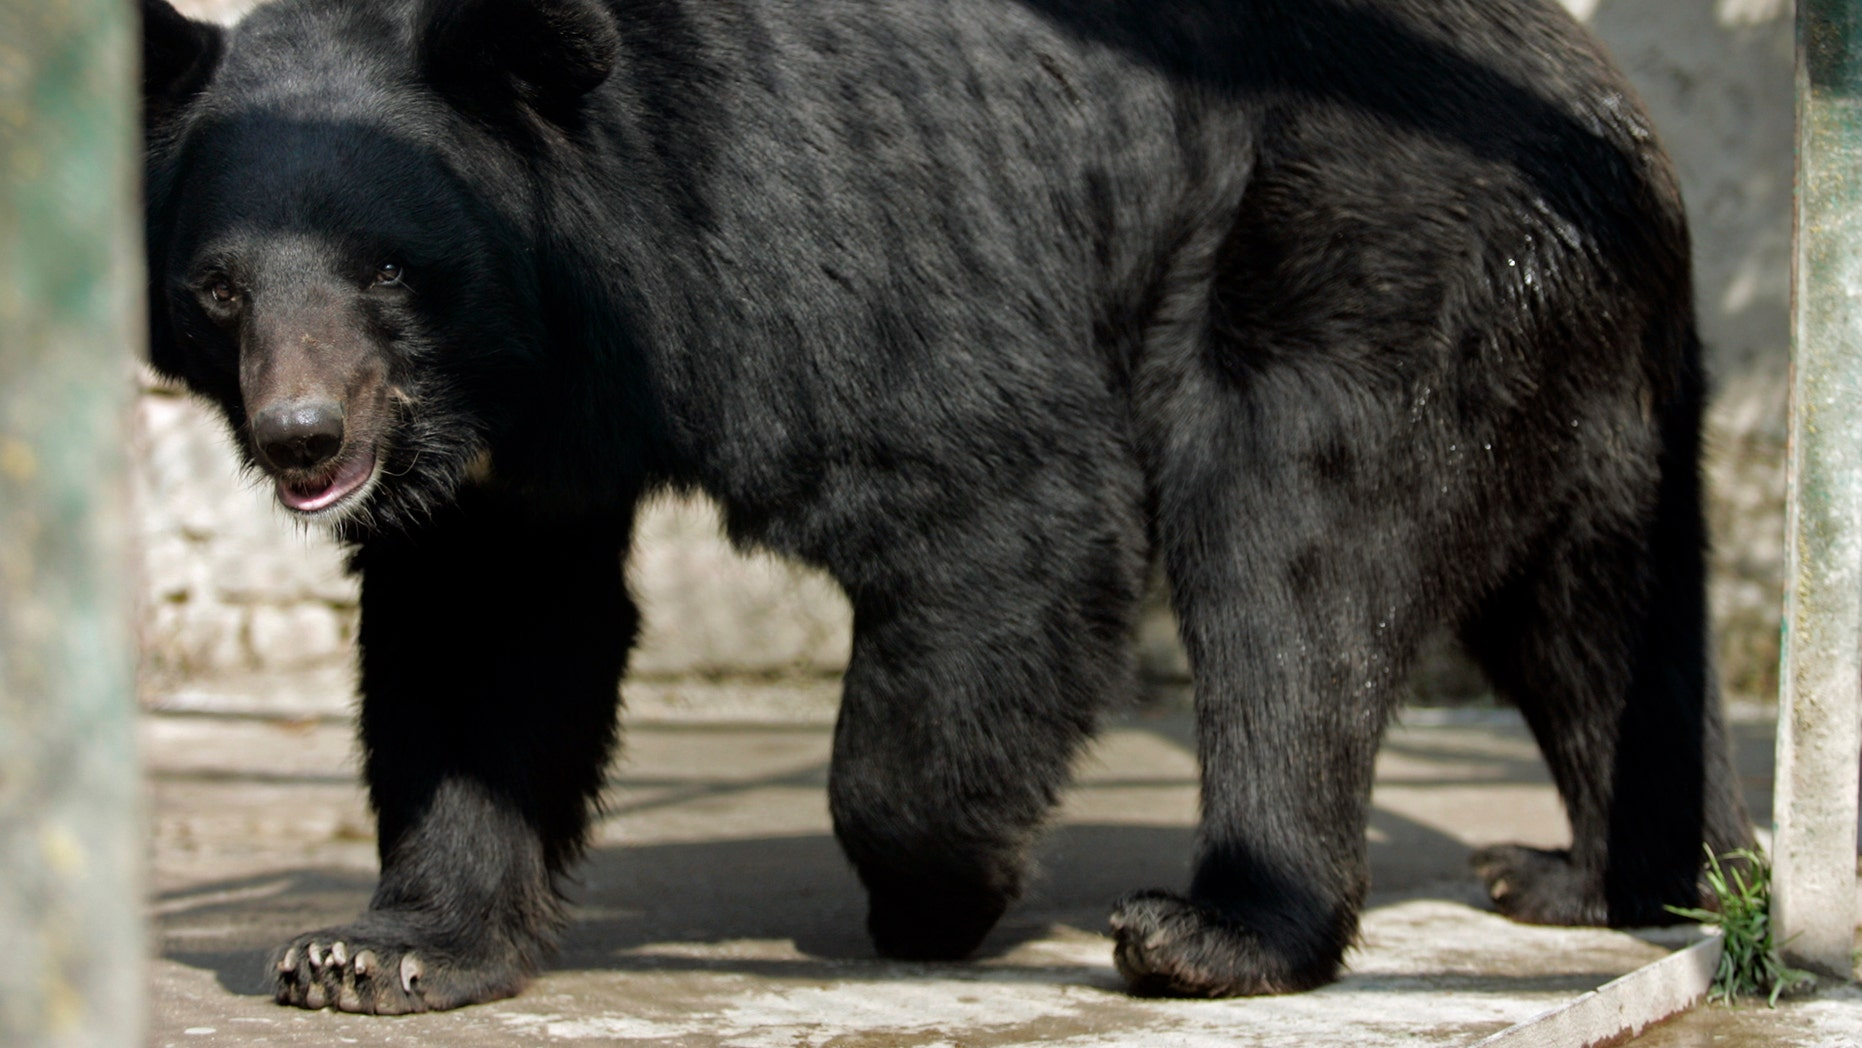 Injured bear fatally mauls man who attempted to take a